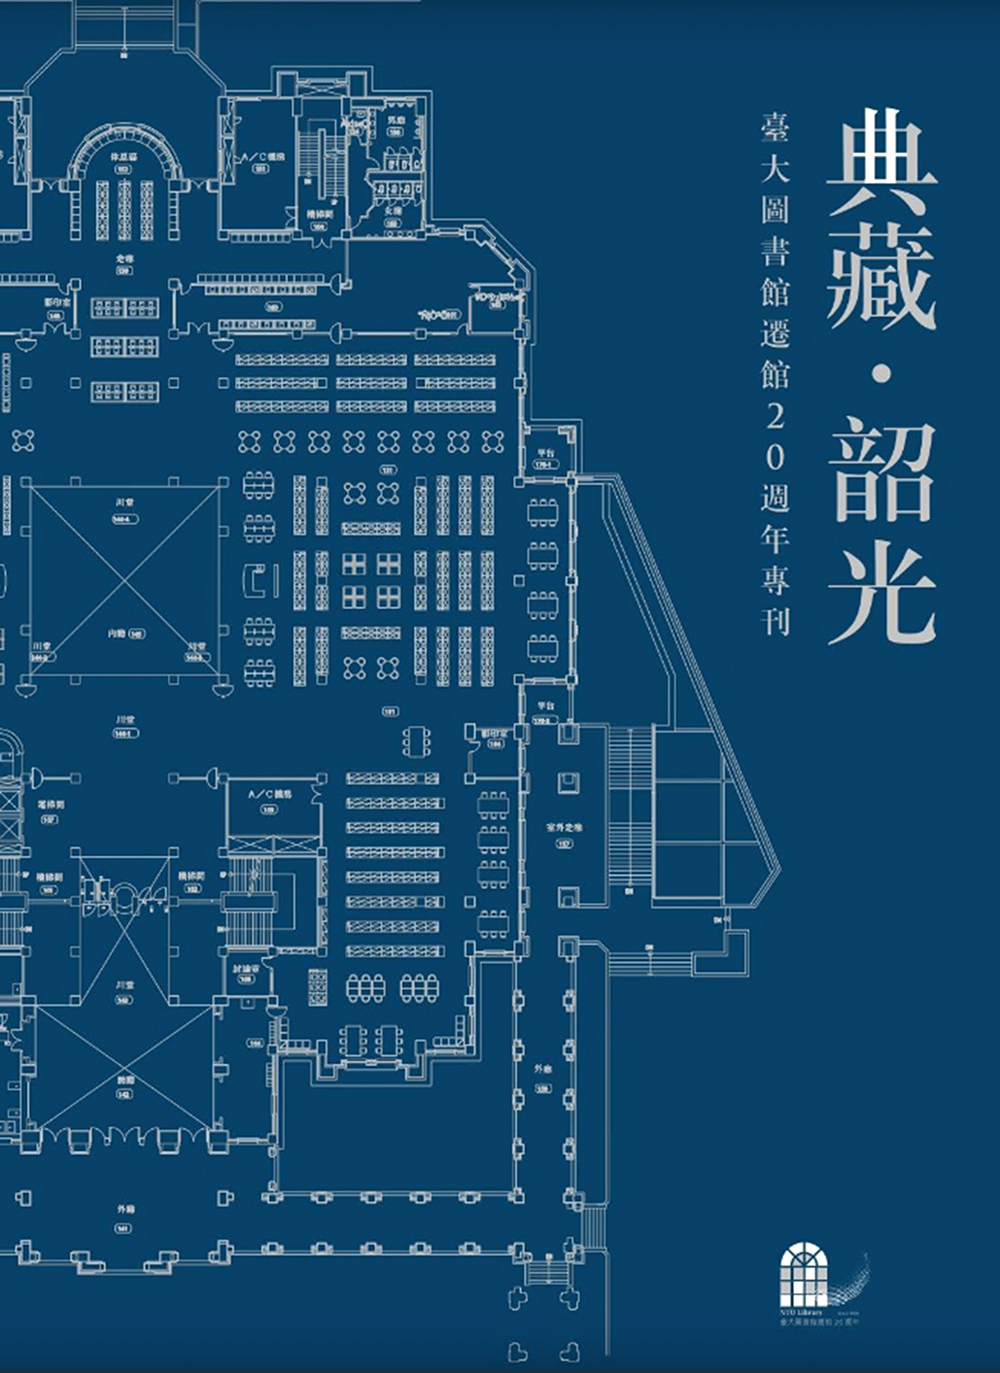 Light for Good: National Taiwan University Library 1998-2018